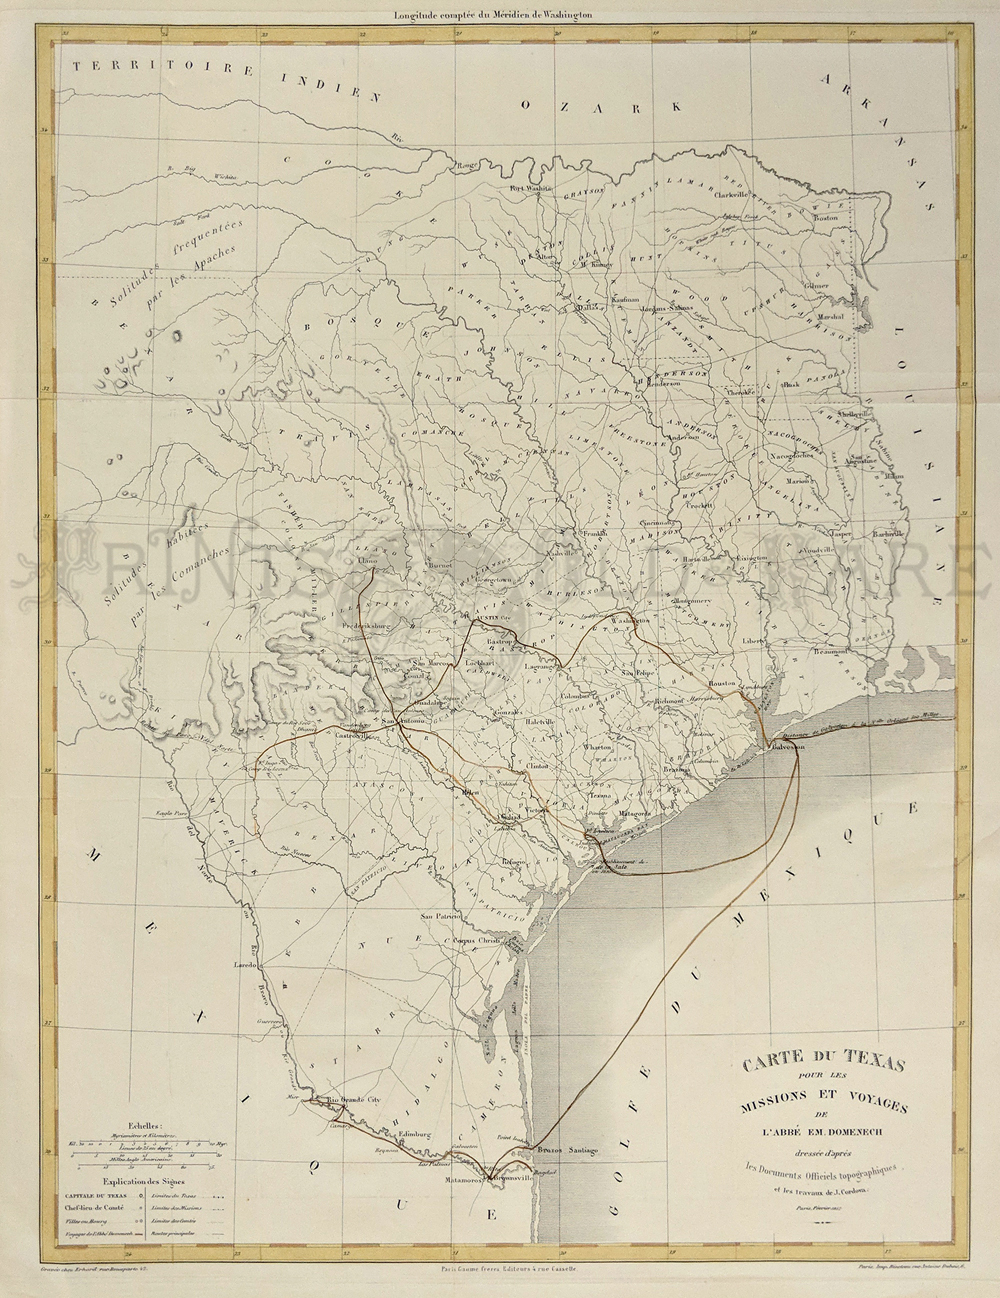 Prints Old & Rare - Texas - Antique Maps & Prints - Old Texas Maps Prints